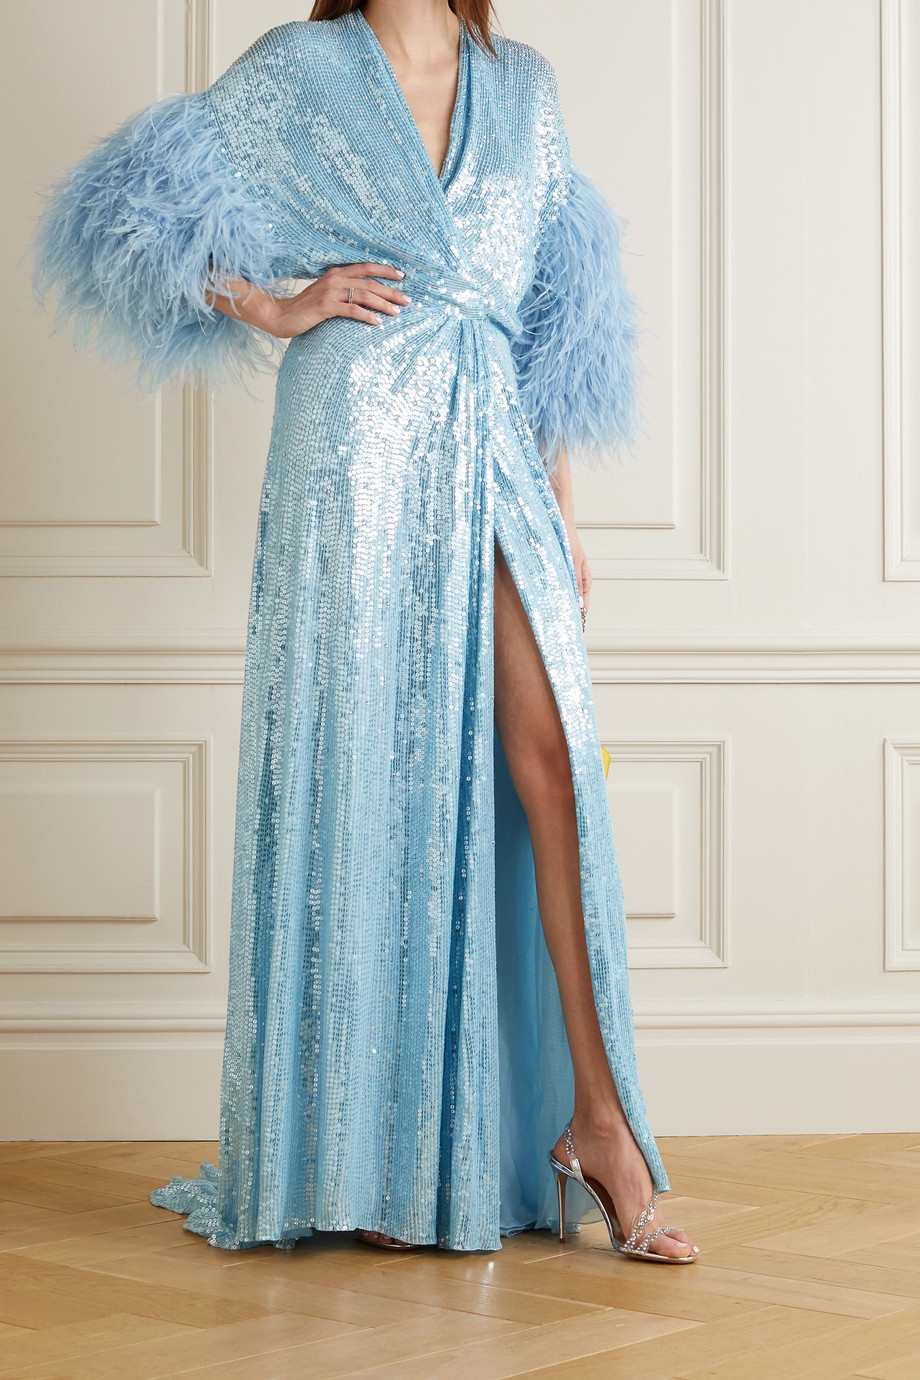 Jenny Packham Feather-trimmed sequined georgette gown